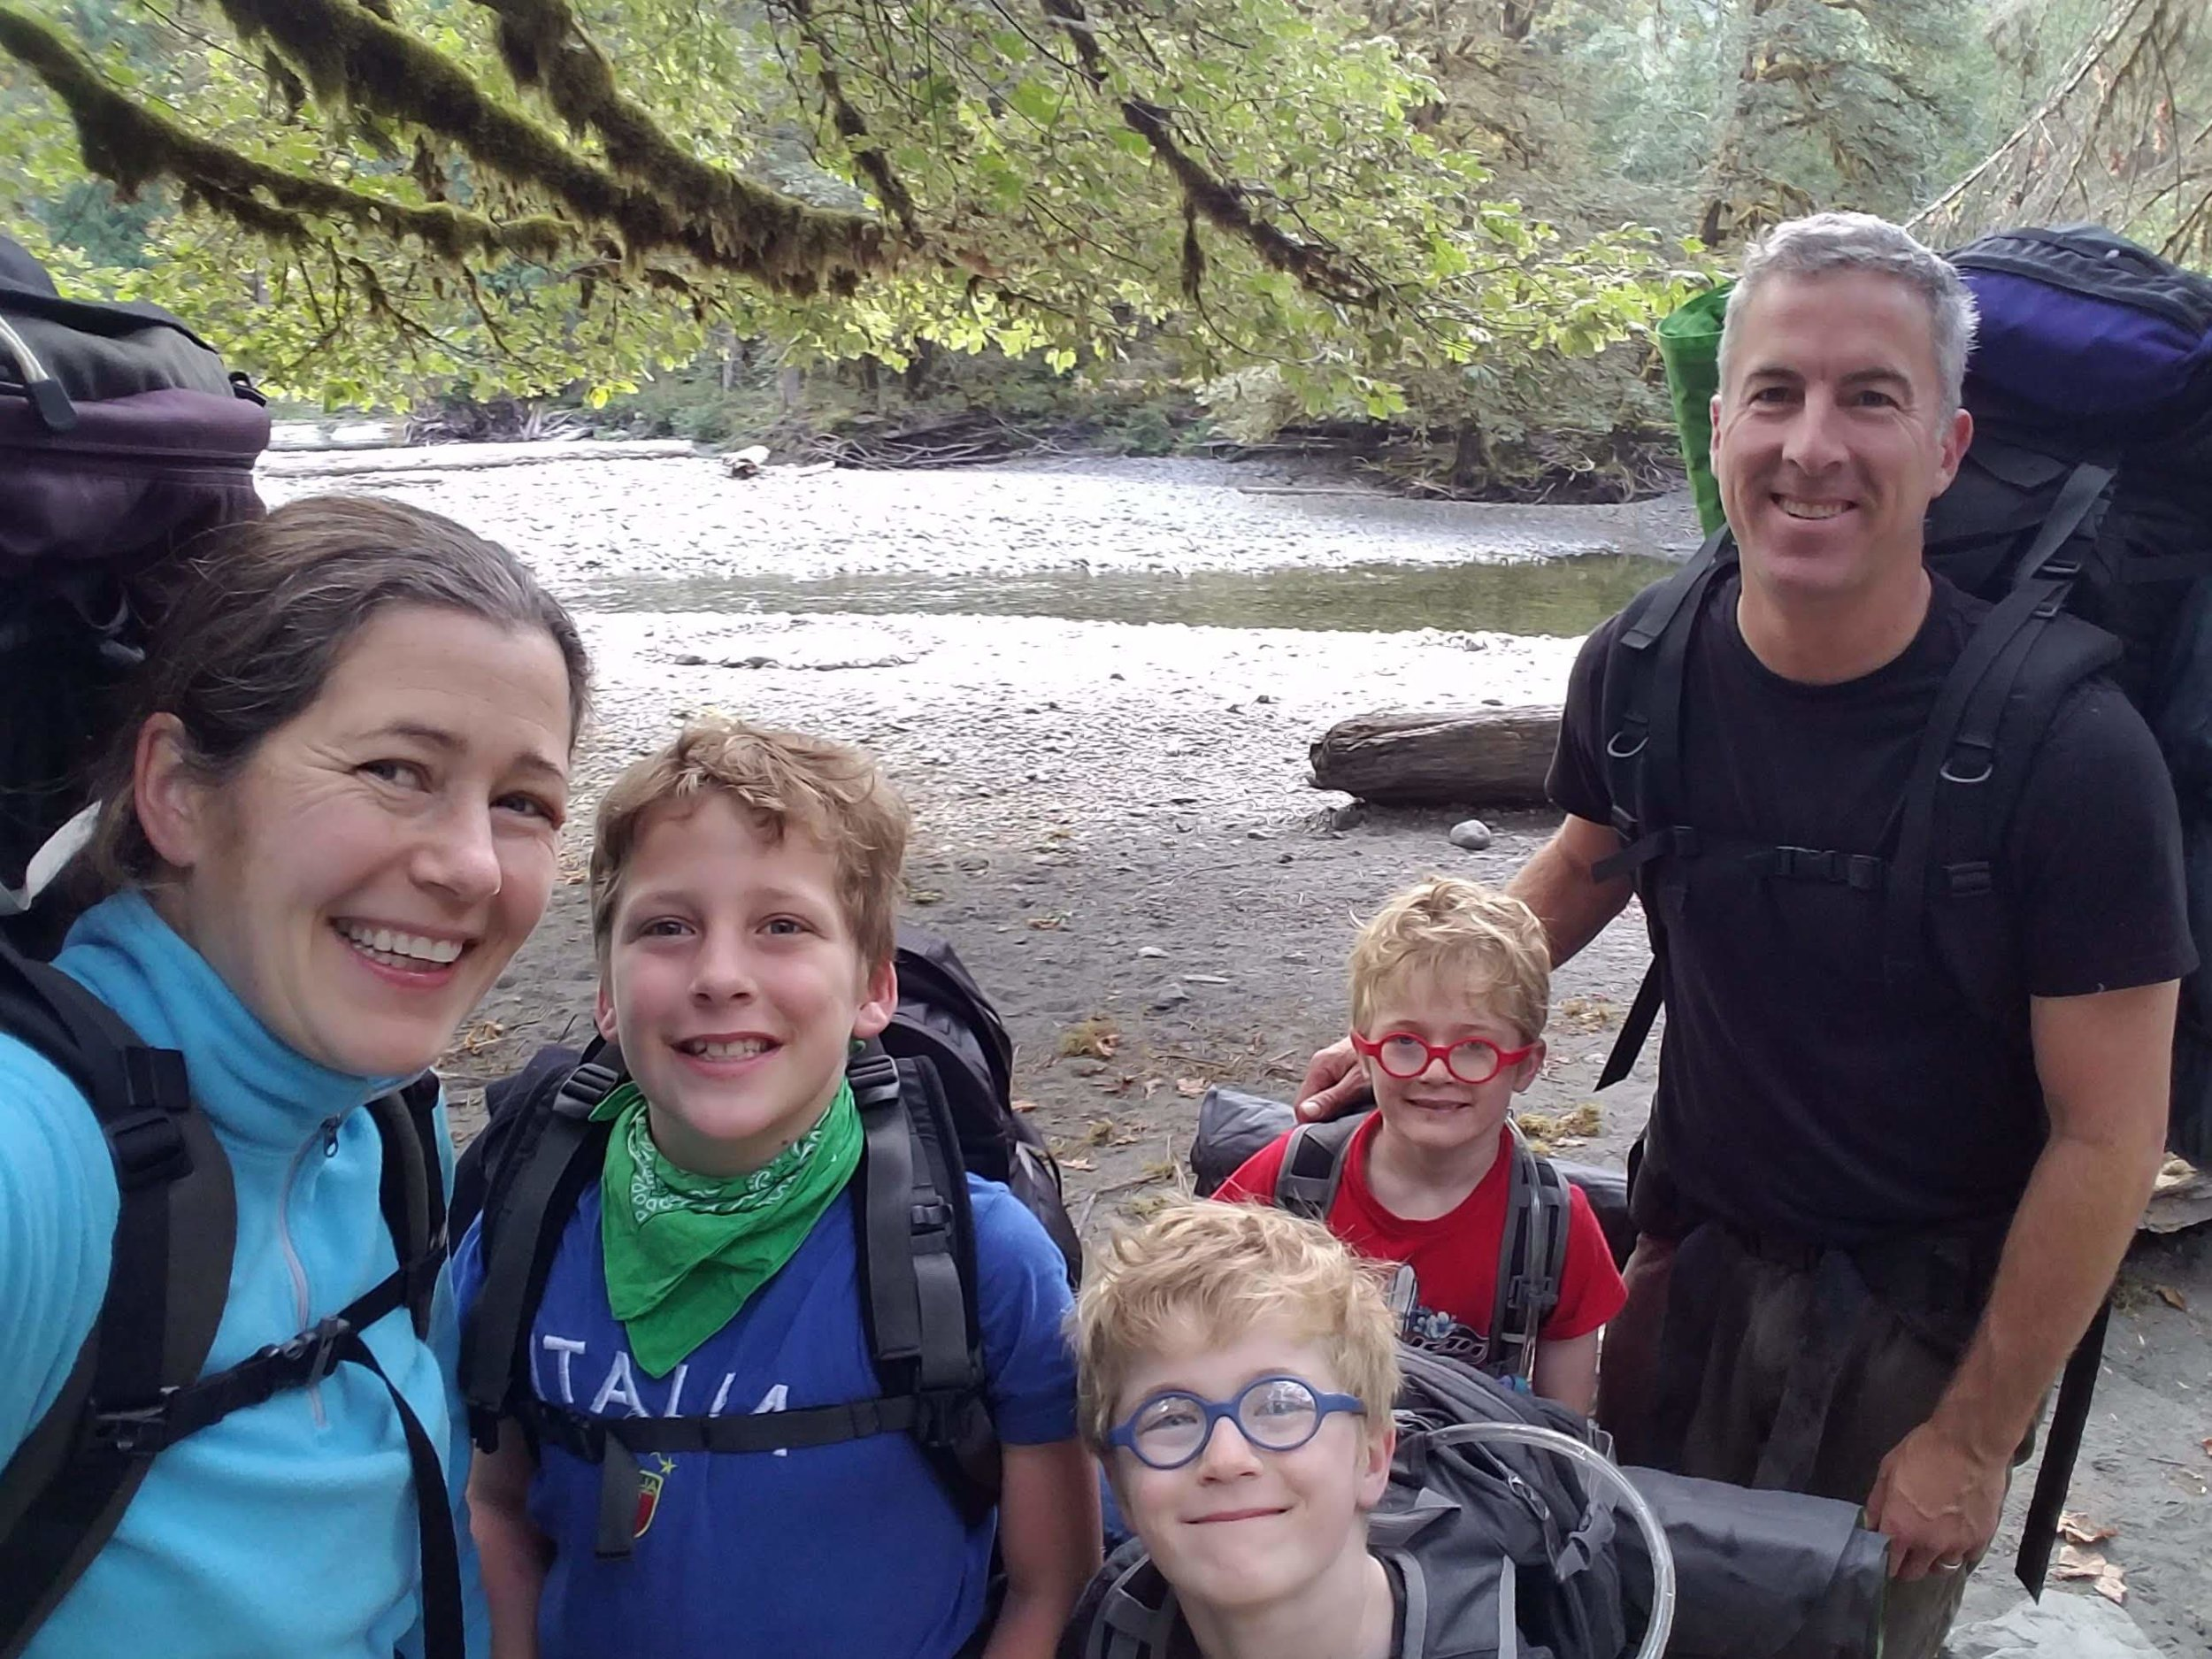 Linnea and her family on a backpacking trip through Olympic National Park in 2018. Photo courtesy Linnea Westerlind.